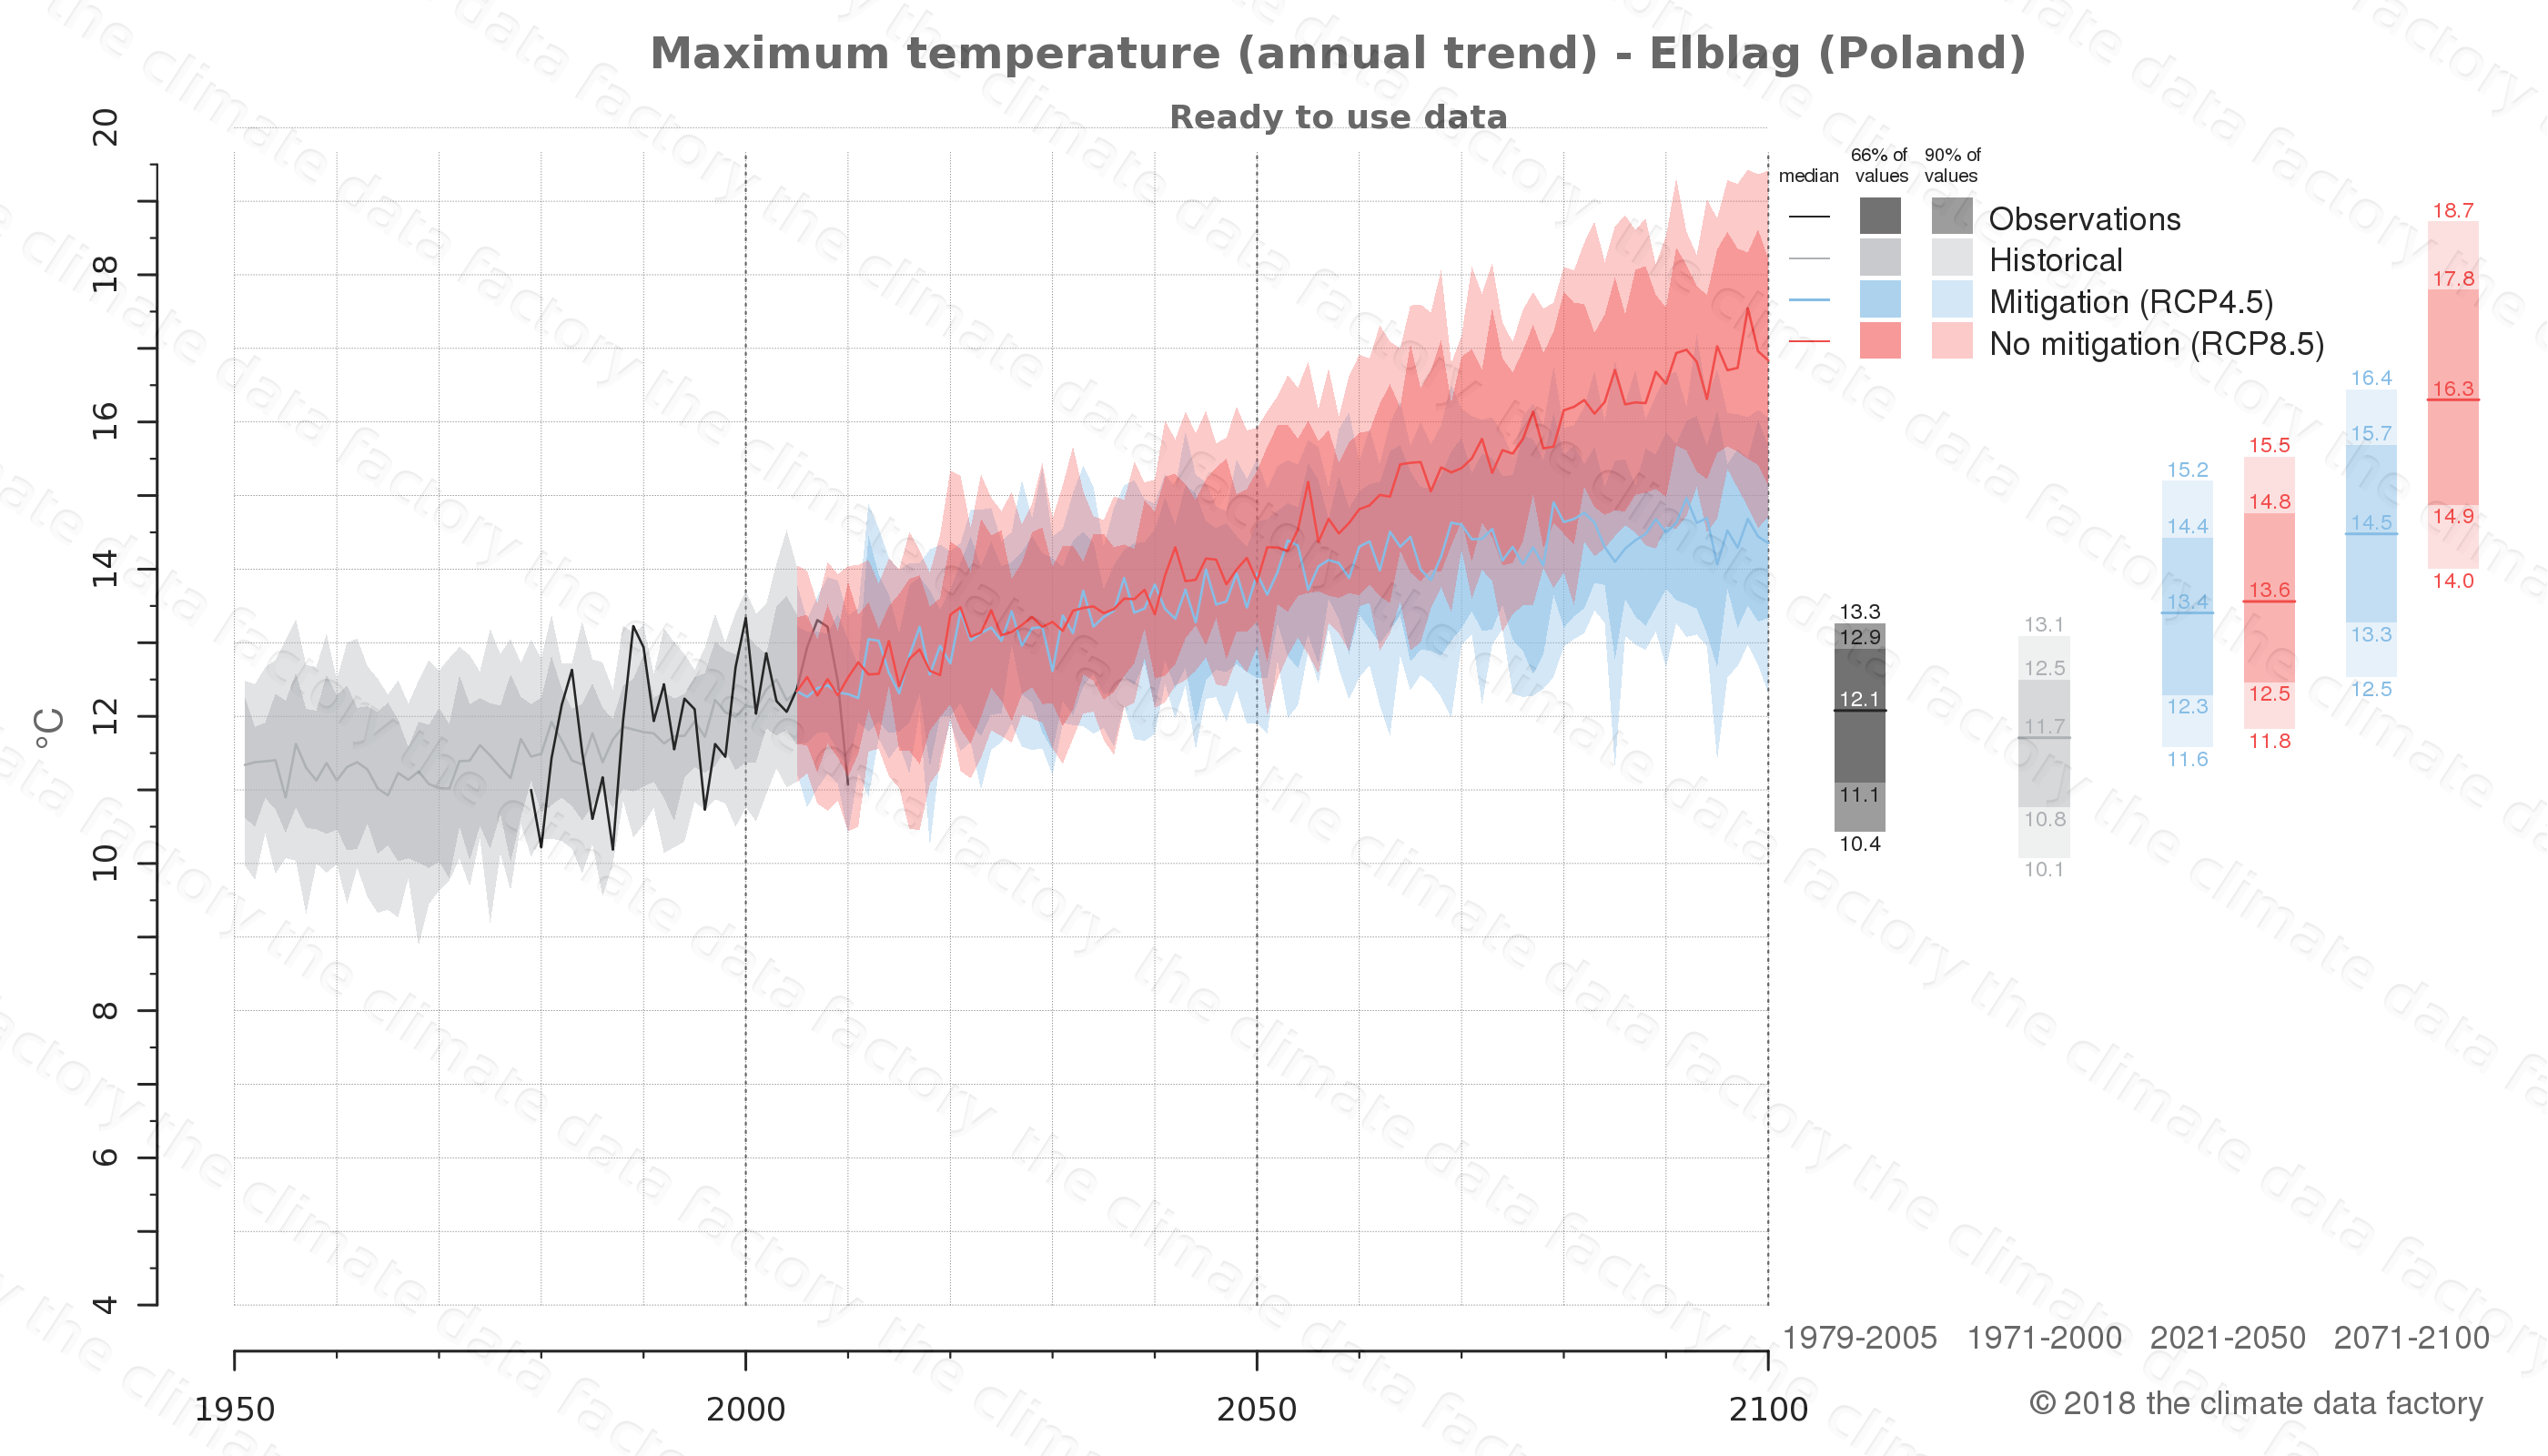 climate change data policy adaptation climate graph city data maximum-temperature elblag poland